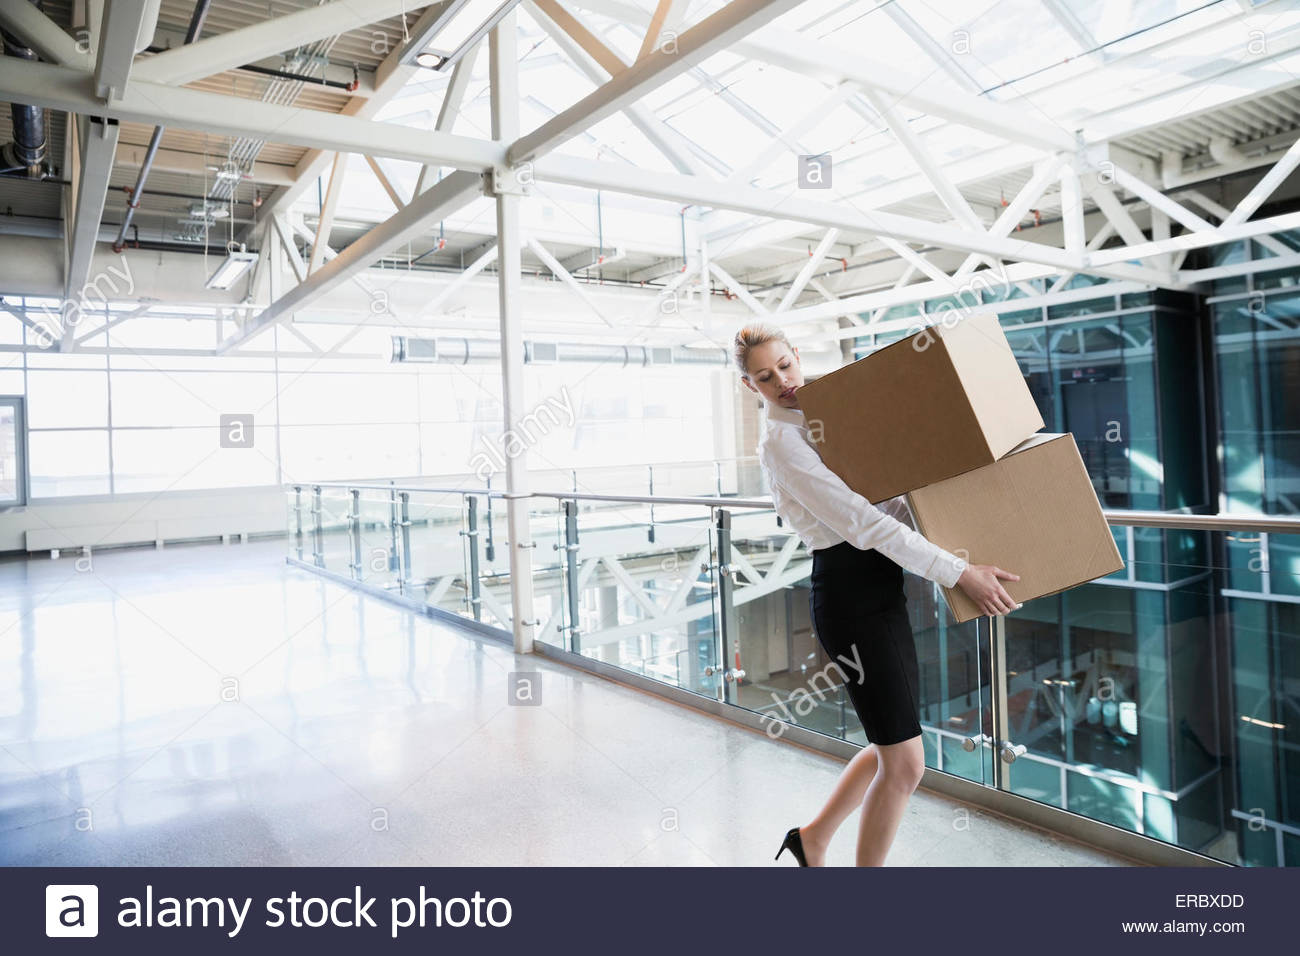 Businesswoman carrying cardboard boxes in atrium - Stock Image